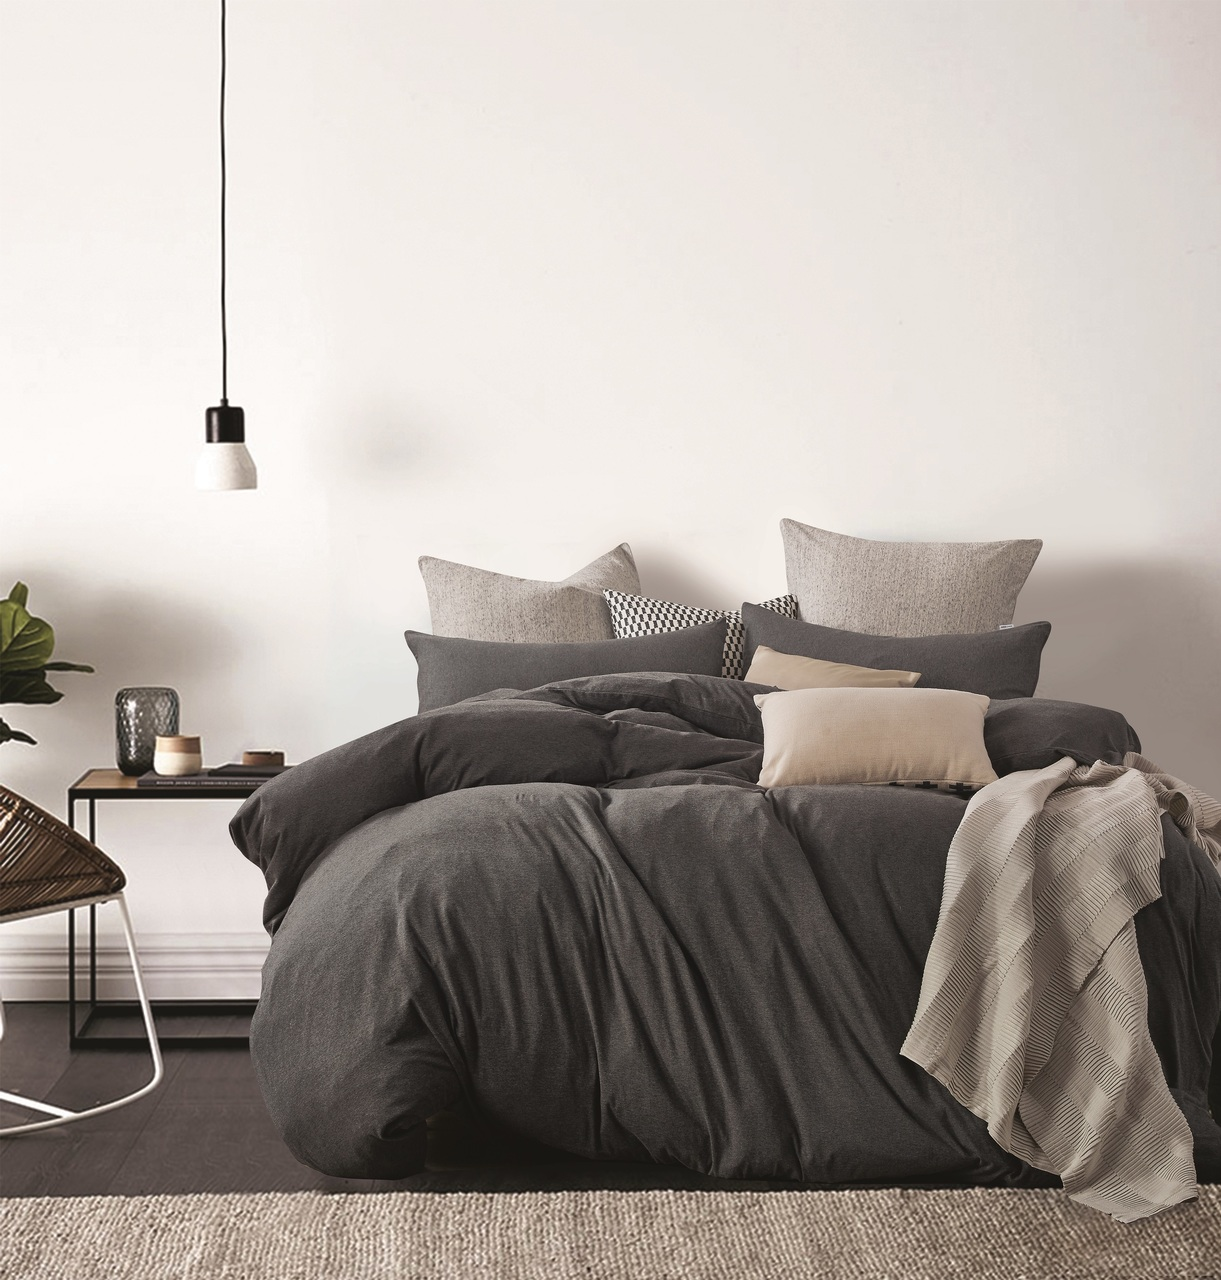 Gioia Casa Jersey Cotton Black Marble King Bed Quilt Cover Set In 2 Linen